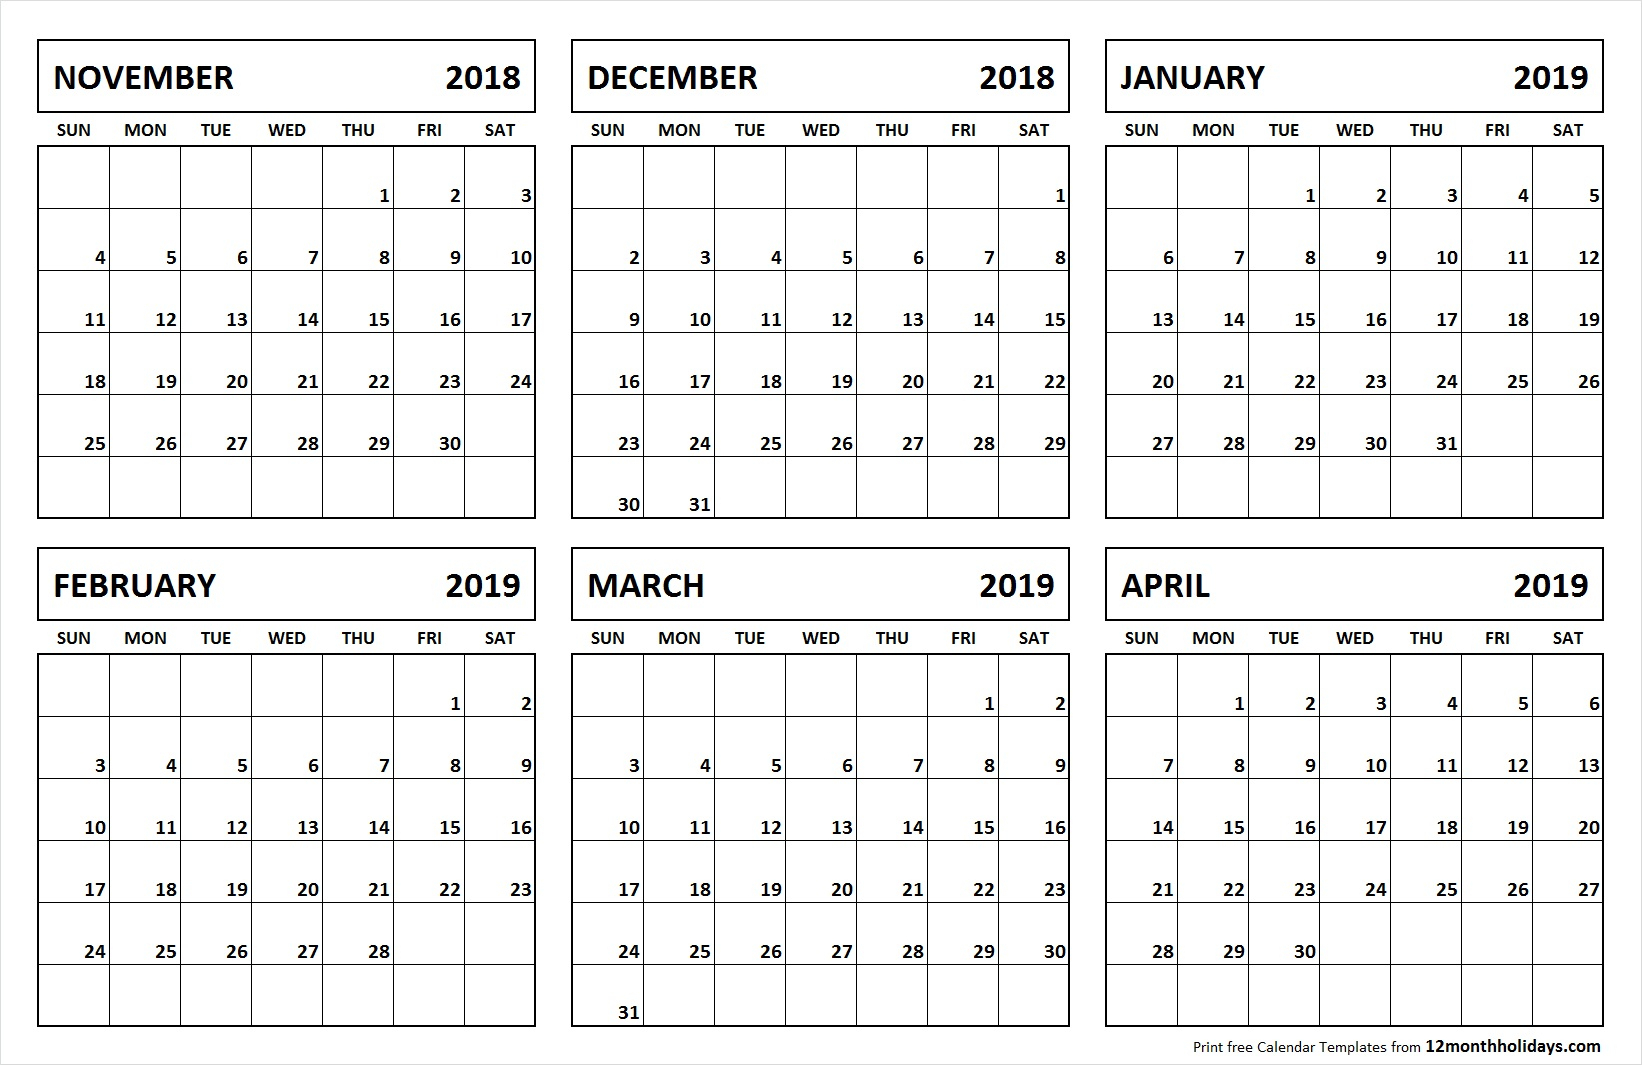 Printable Blank 6 Month Calendar November 2018 April 2019 intended for Six Month Calendar Template